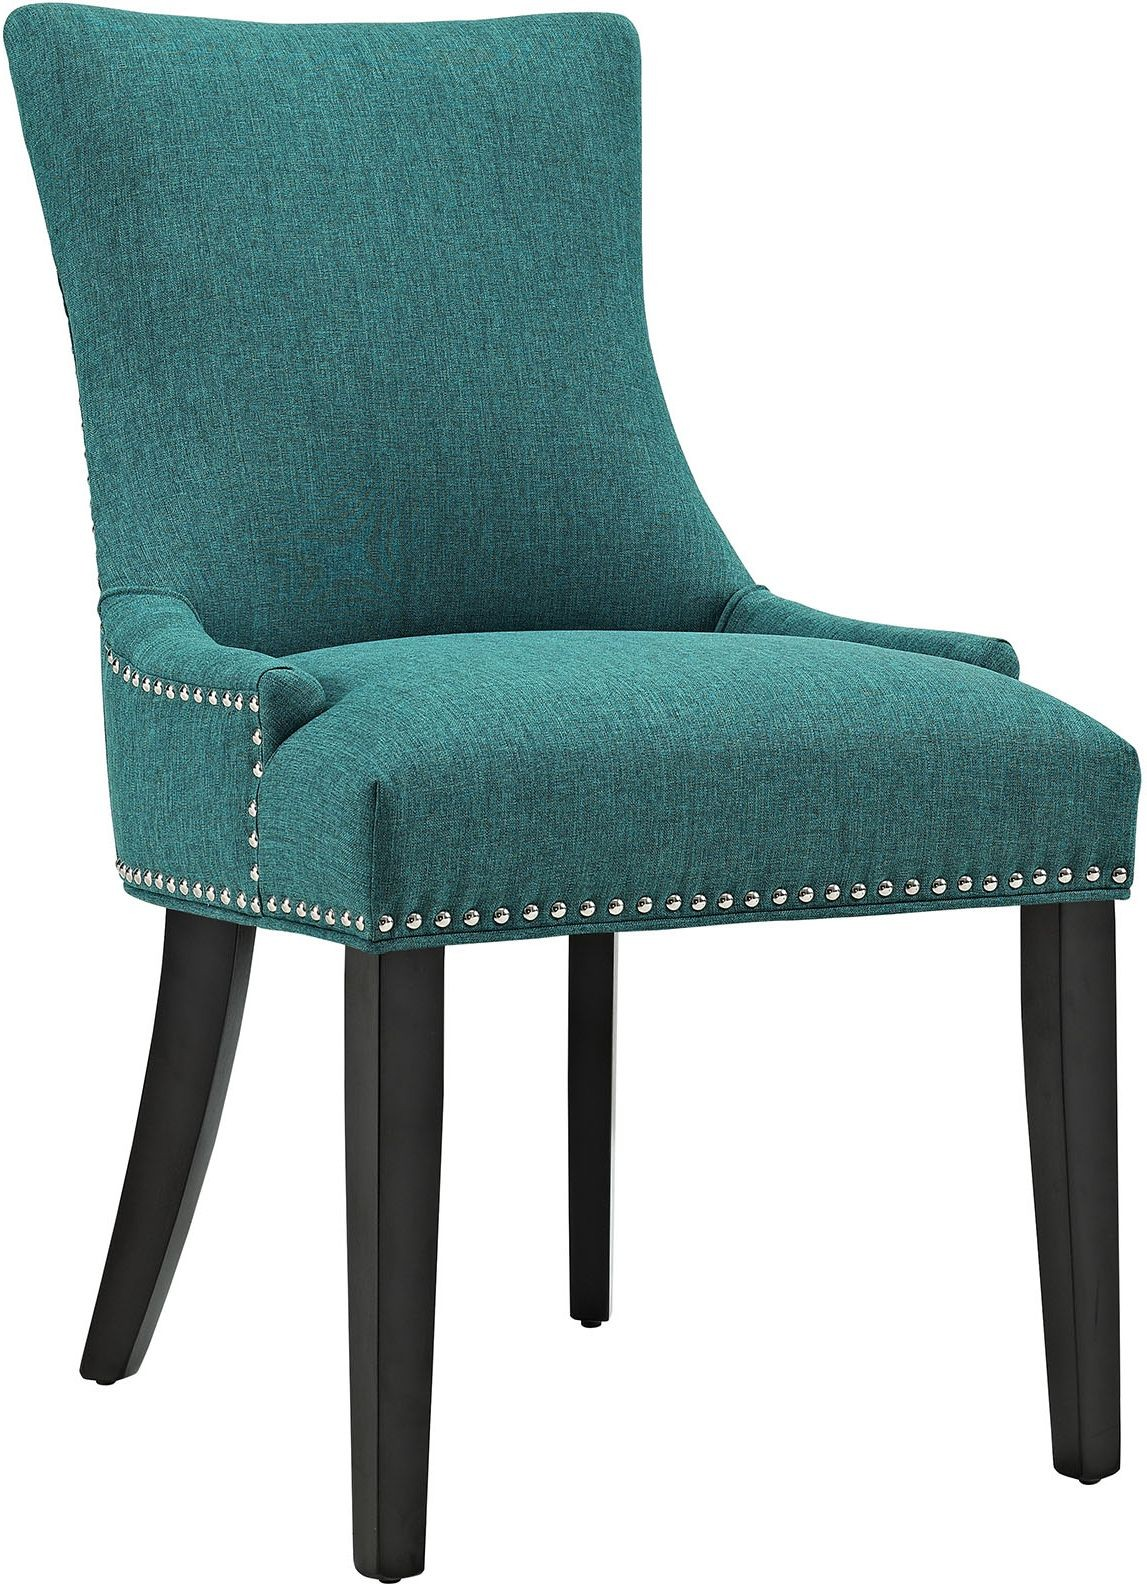 Teal Chair Marquis Teal Upholstered Dining Chair Eei 2229 Tea